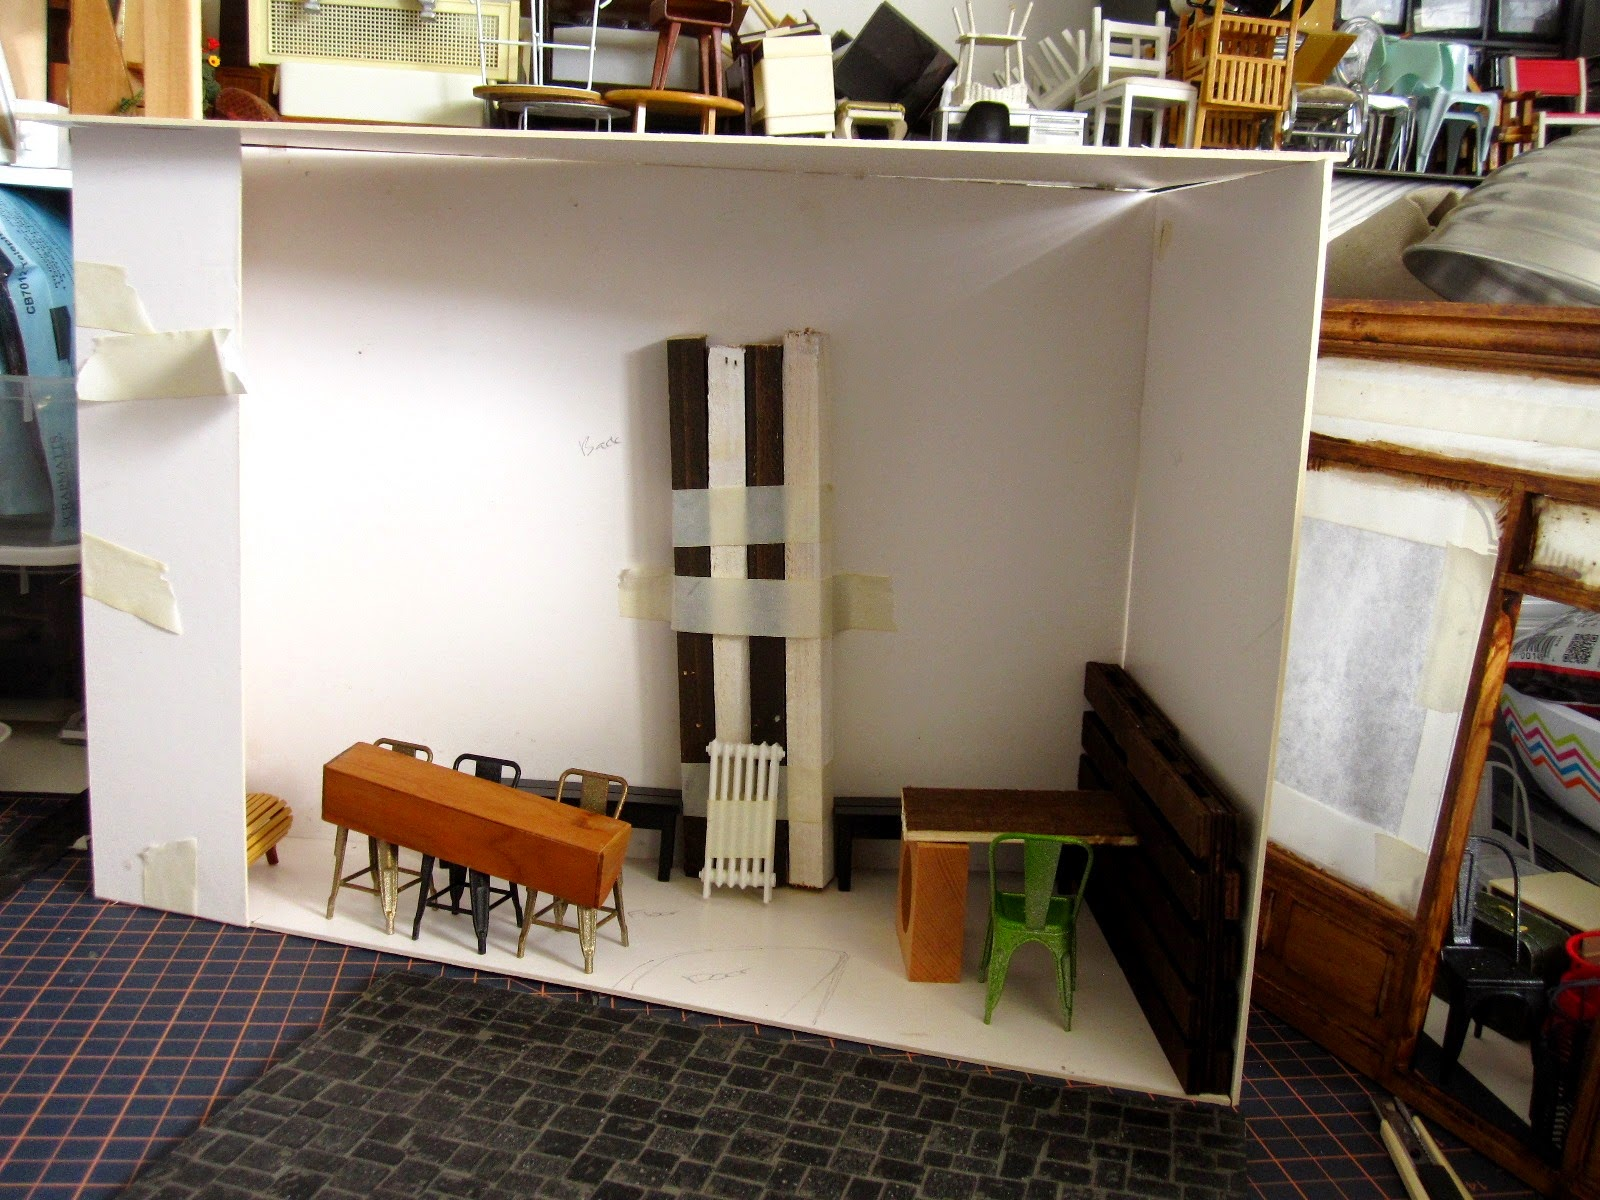 Modern dolls' house miniature cafe, half built with furniture arranged in a cardboard room.